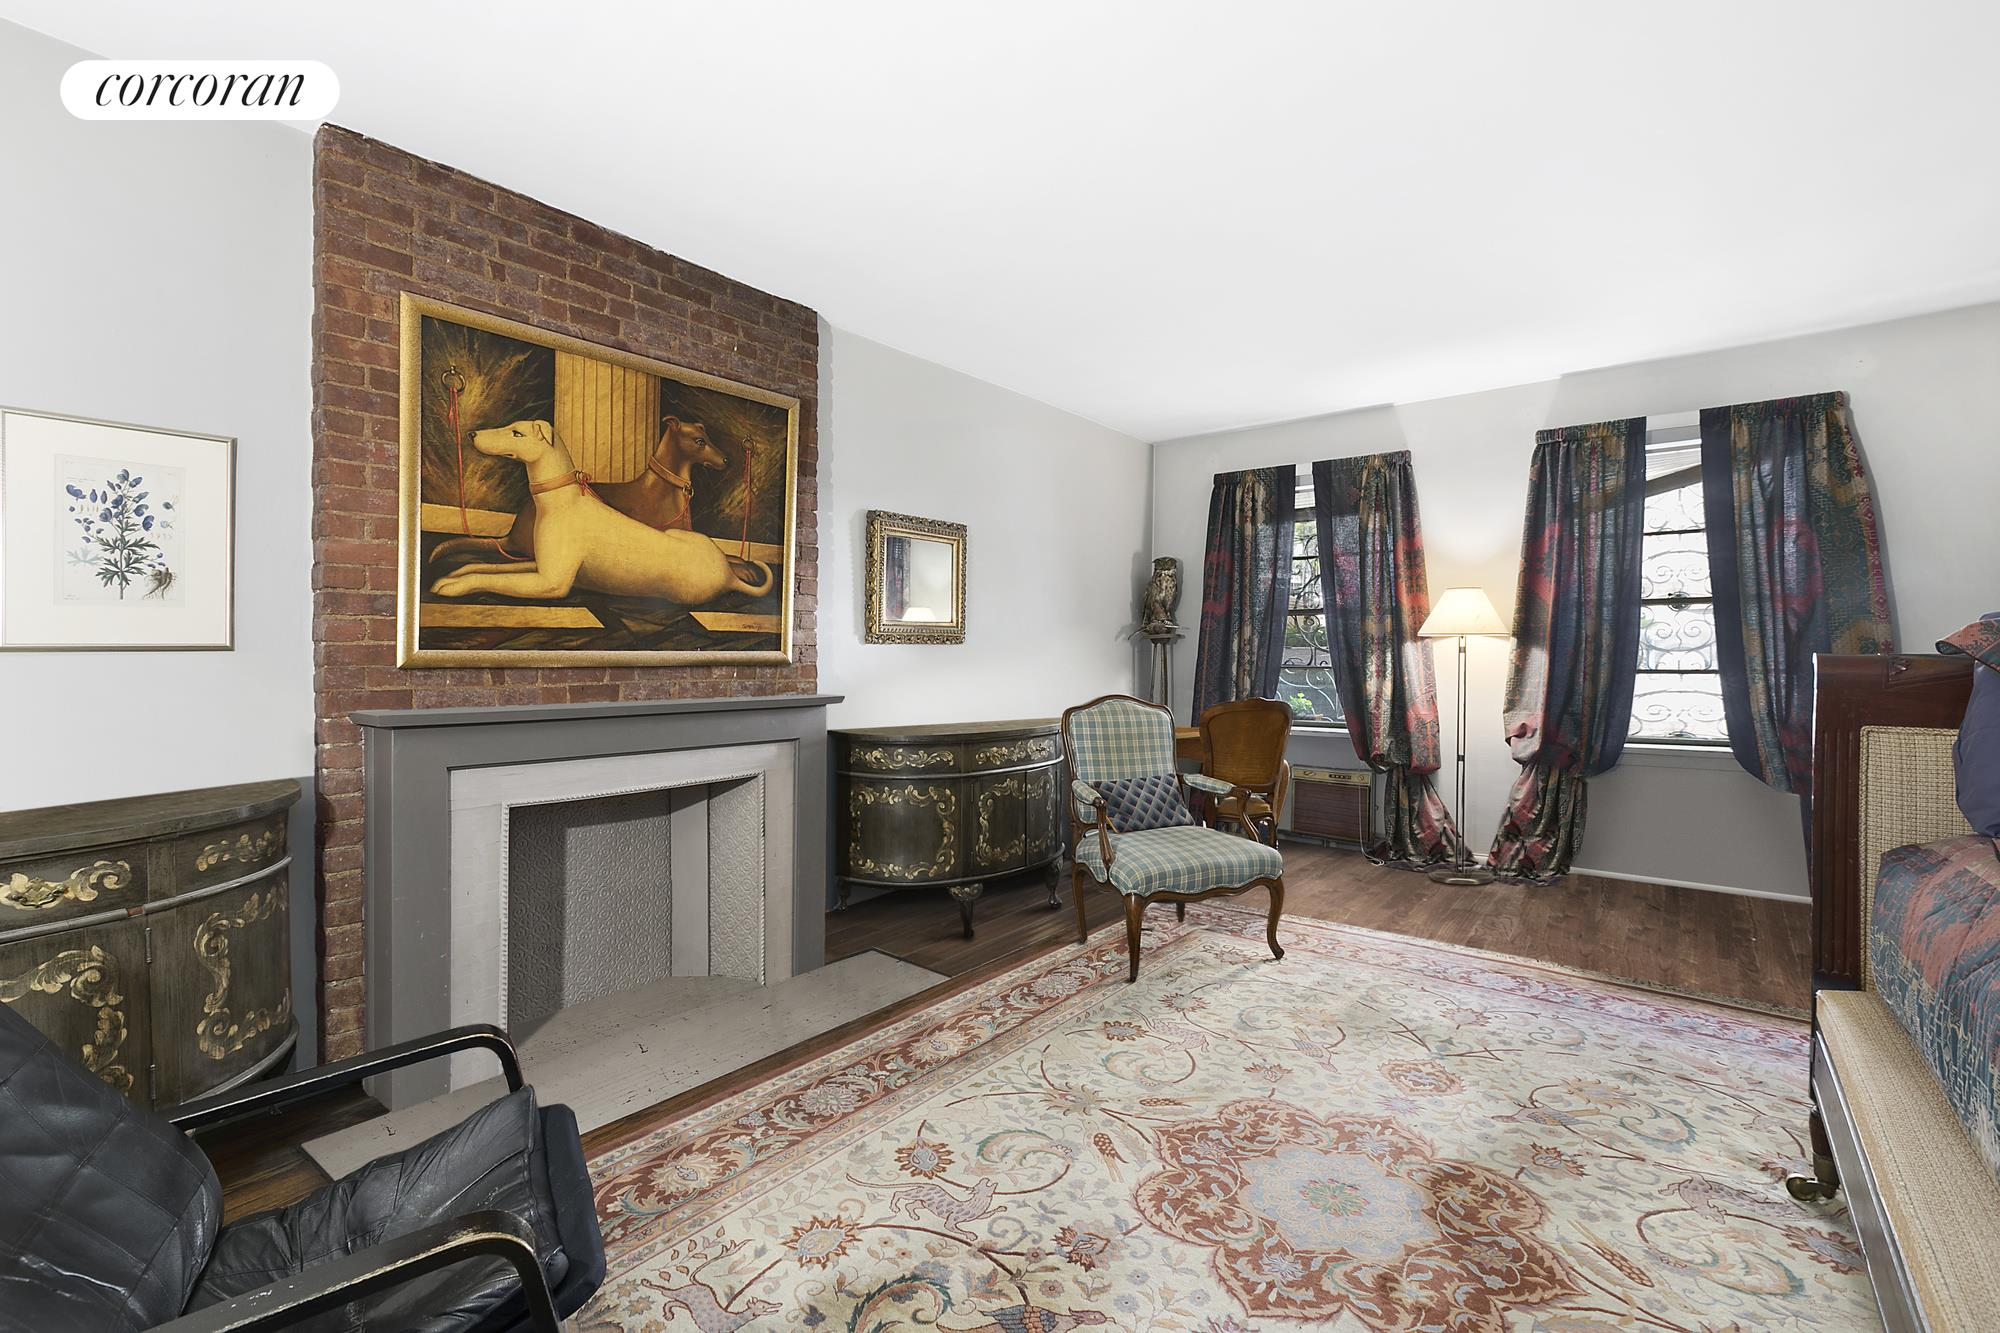 46 West 71st Street, GA, Gorgeous brownstone block, right off of Park.